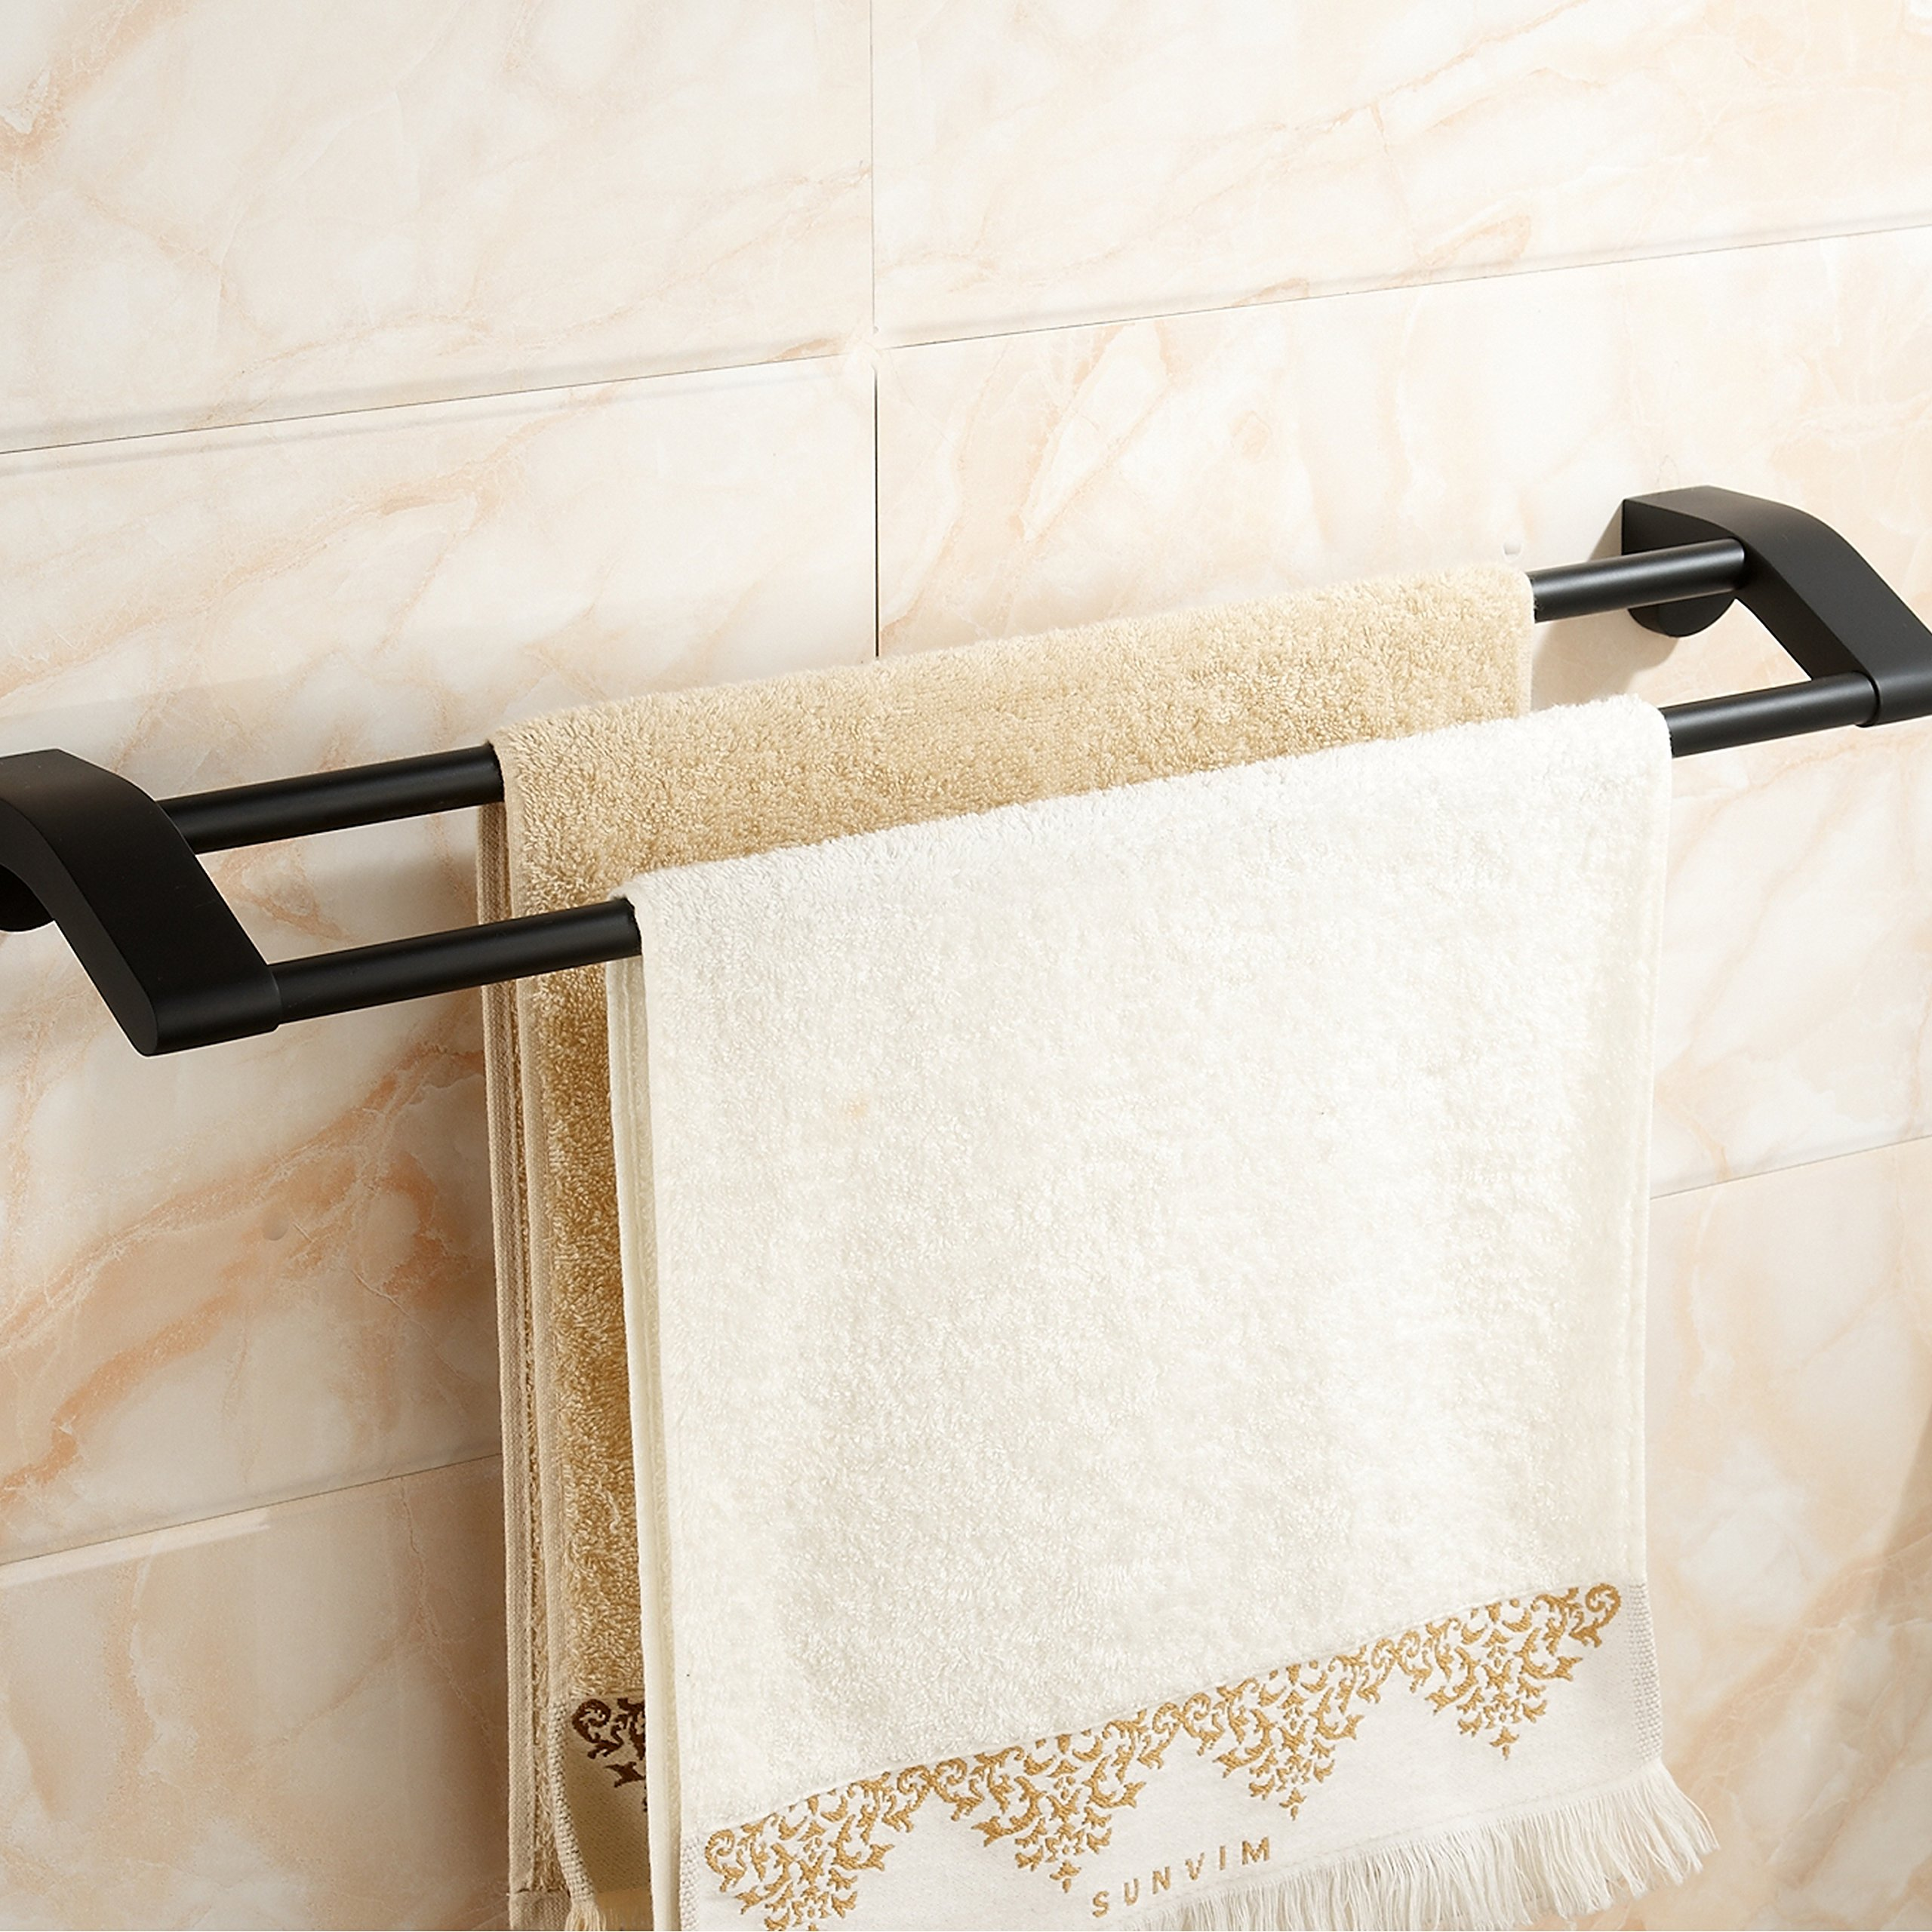 Bathroom Double Towel Bar Rack Bath Hand Towel Holder Contemporary Hotel Towel Bar Hanger Modern Heavy Duty Kitchen Shelf Storage Stainless Steel Wall Mount Satin Matte Black Finish MARMOLUX ACC